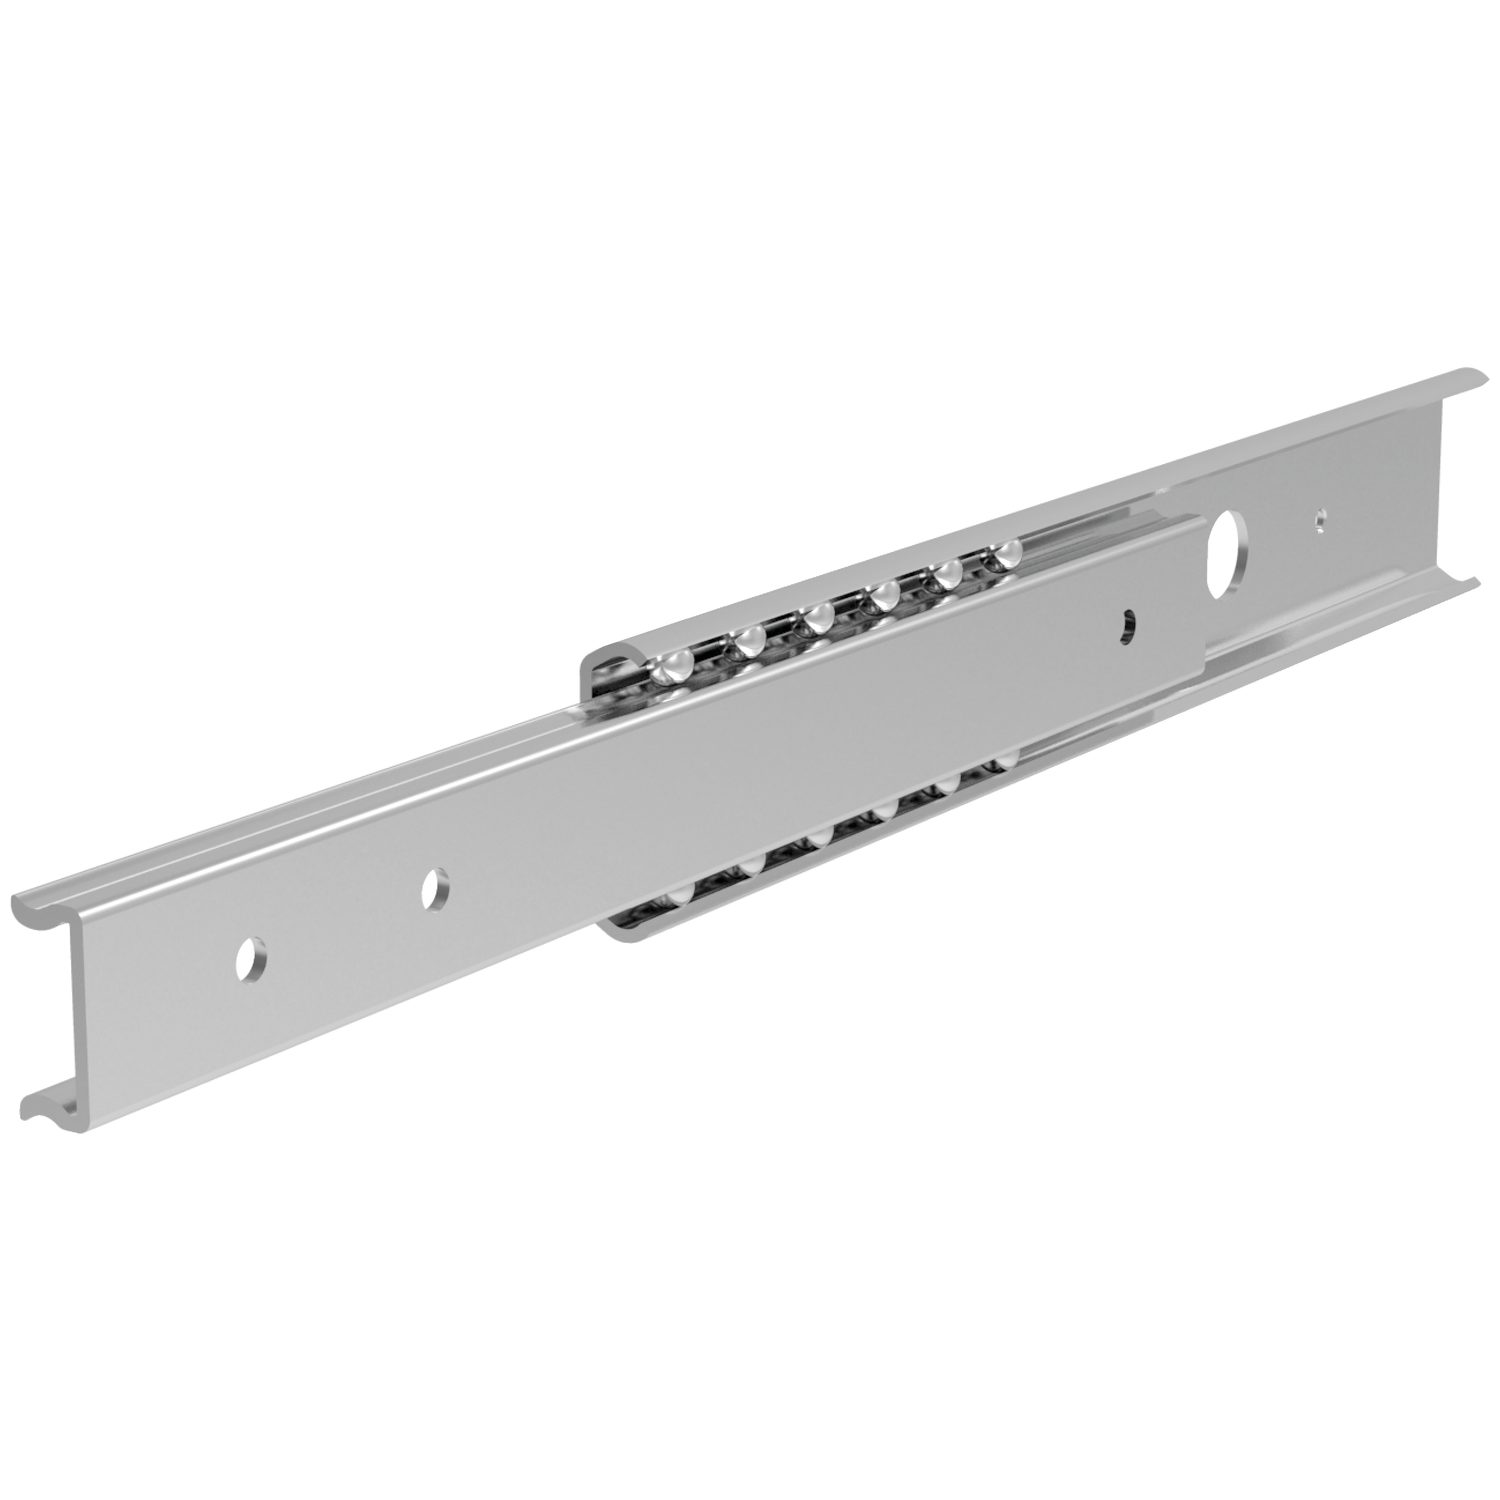 L2030 - Self-Retracting Drawer Slides